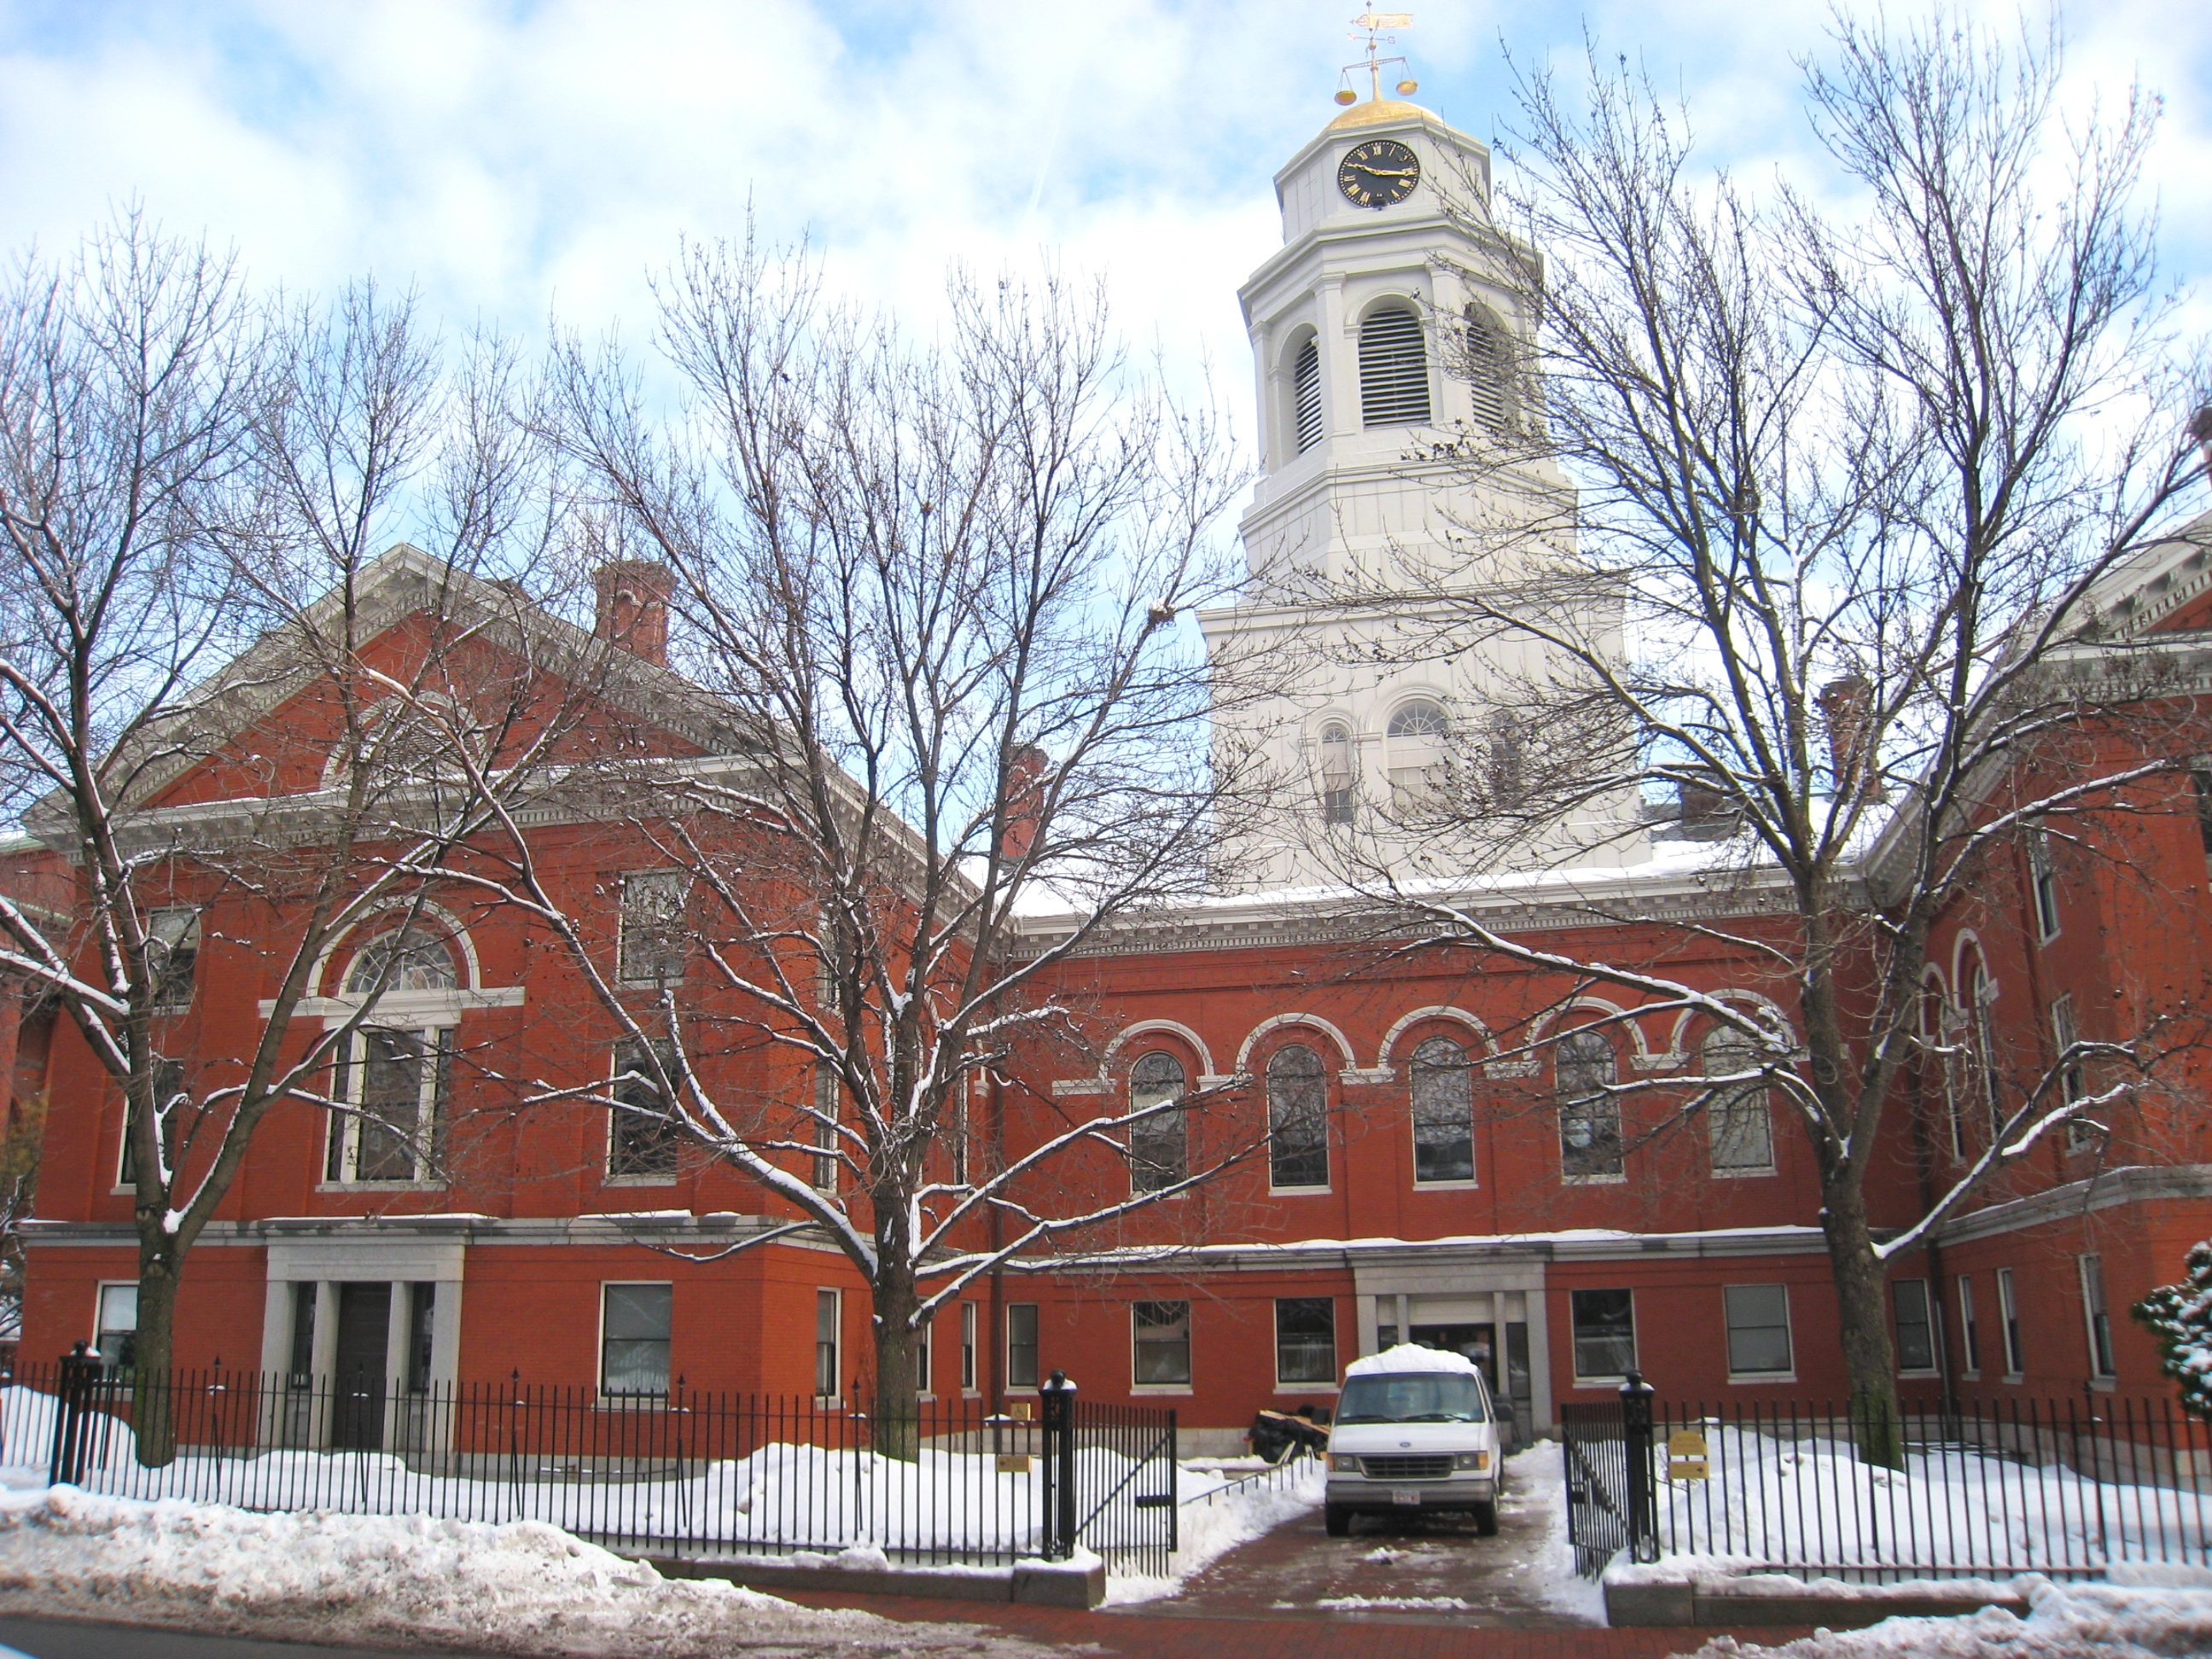 Middlesex County Courthouse, Cambridge, MA